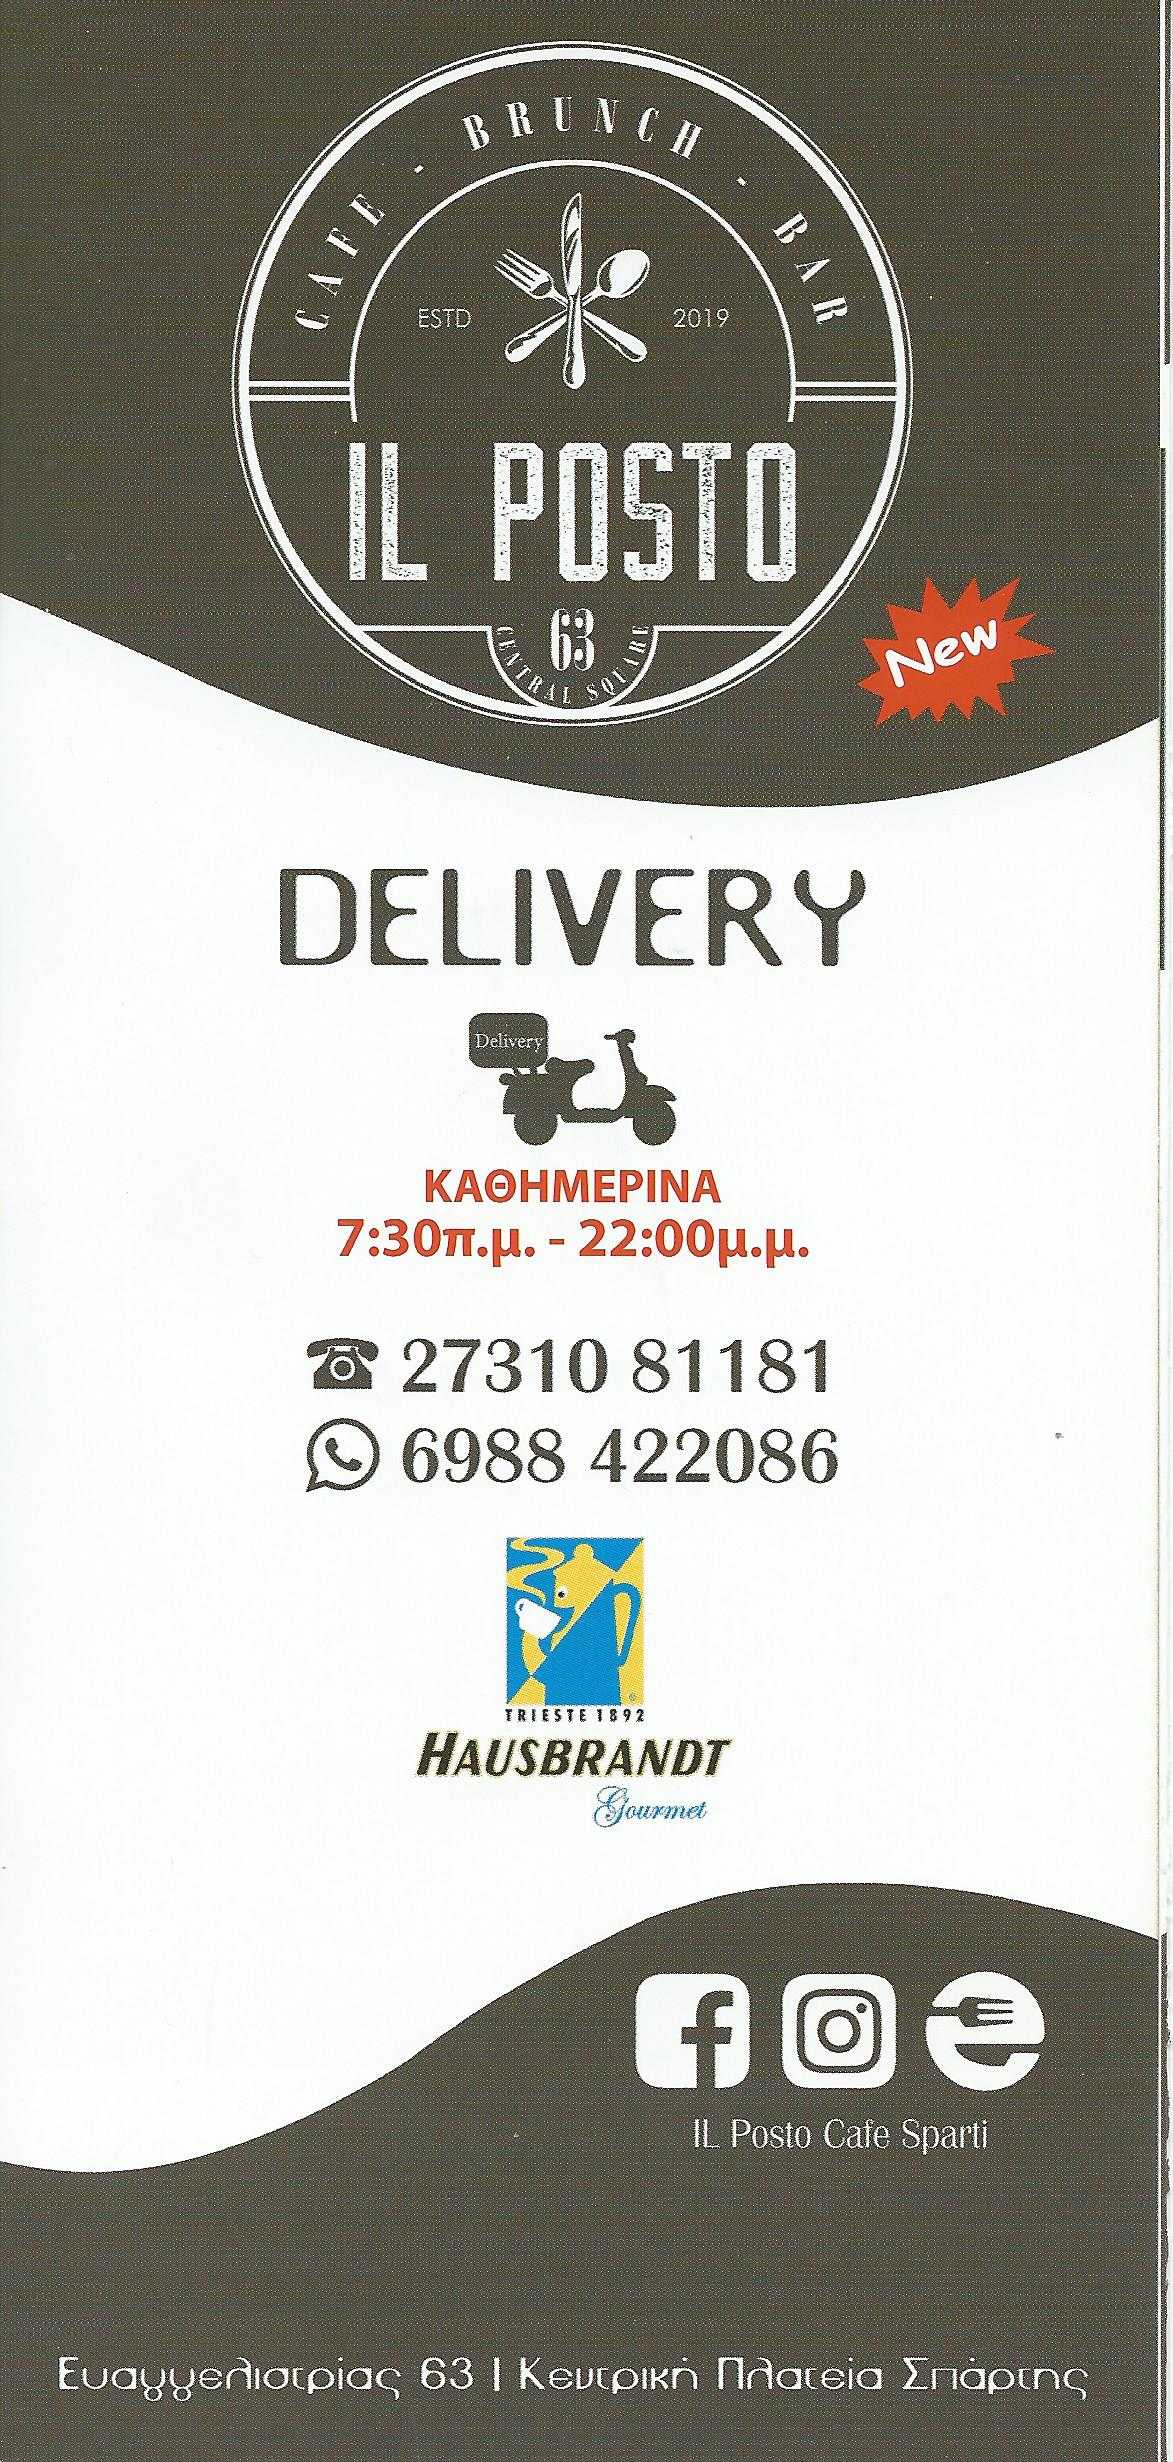 DELIVERY ΜΕΝΟΥ IL POSTO CAFE BRUNCH BAR ΣΠΑΡΤΗ ΤΗΛ. 2731081181, 6988422086